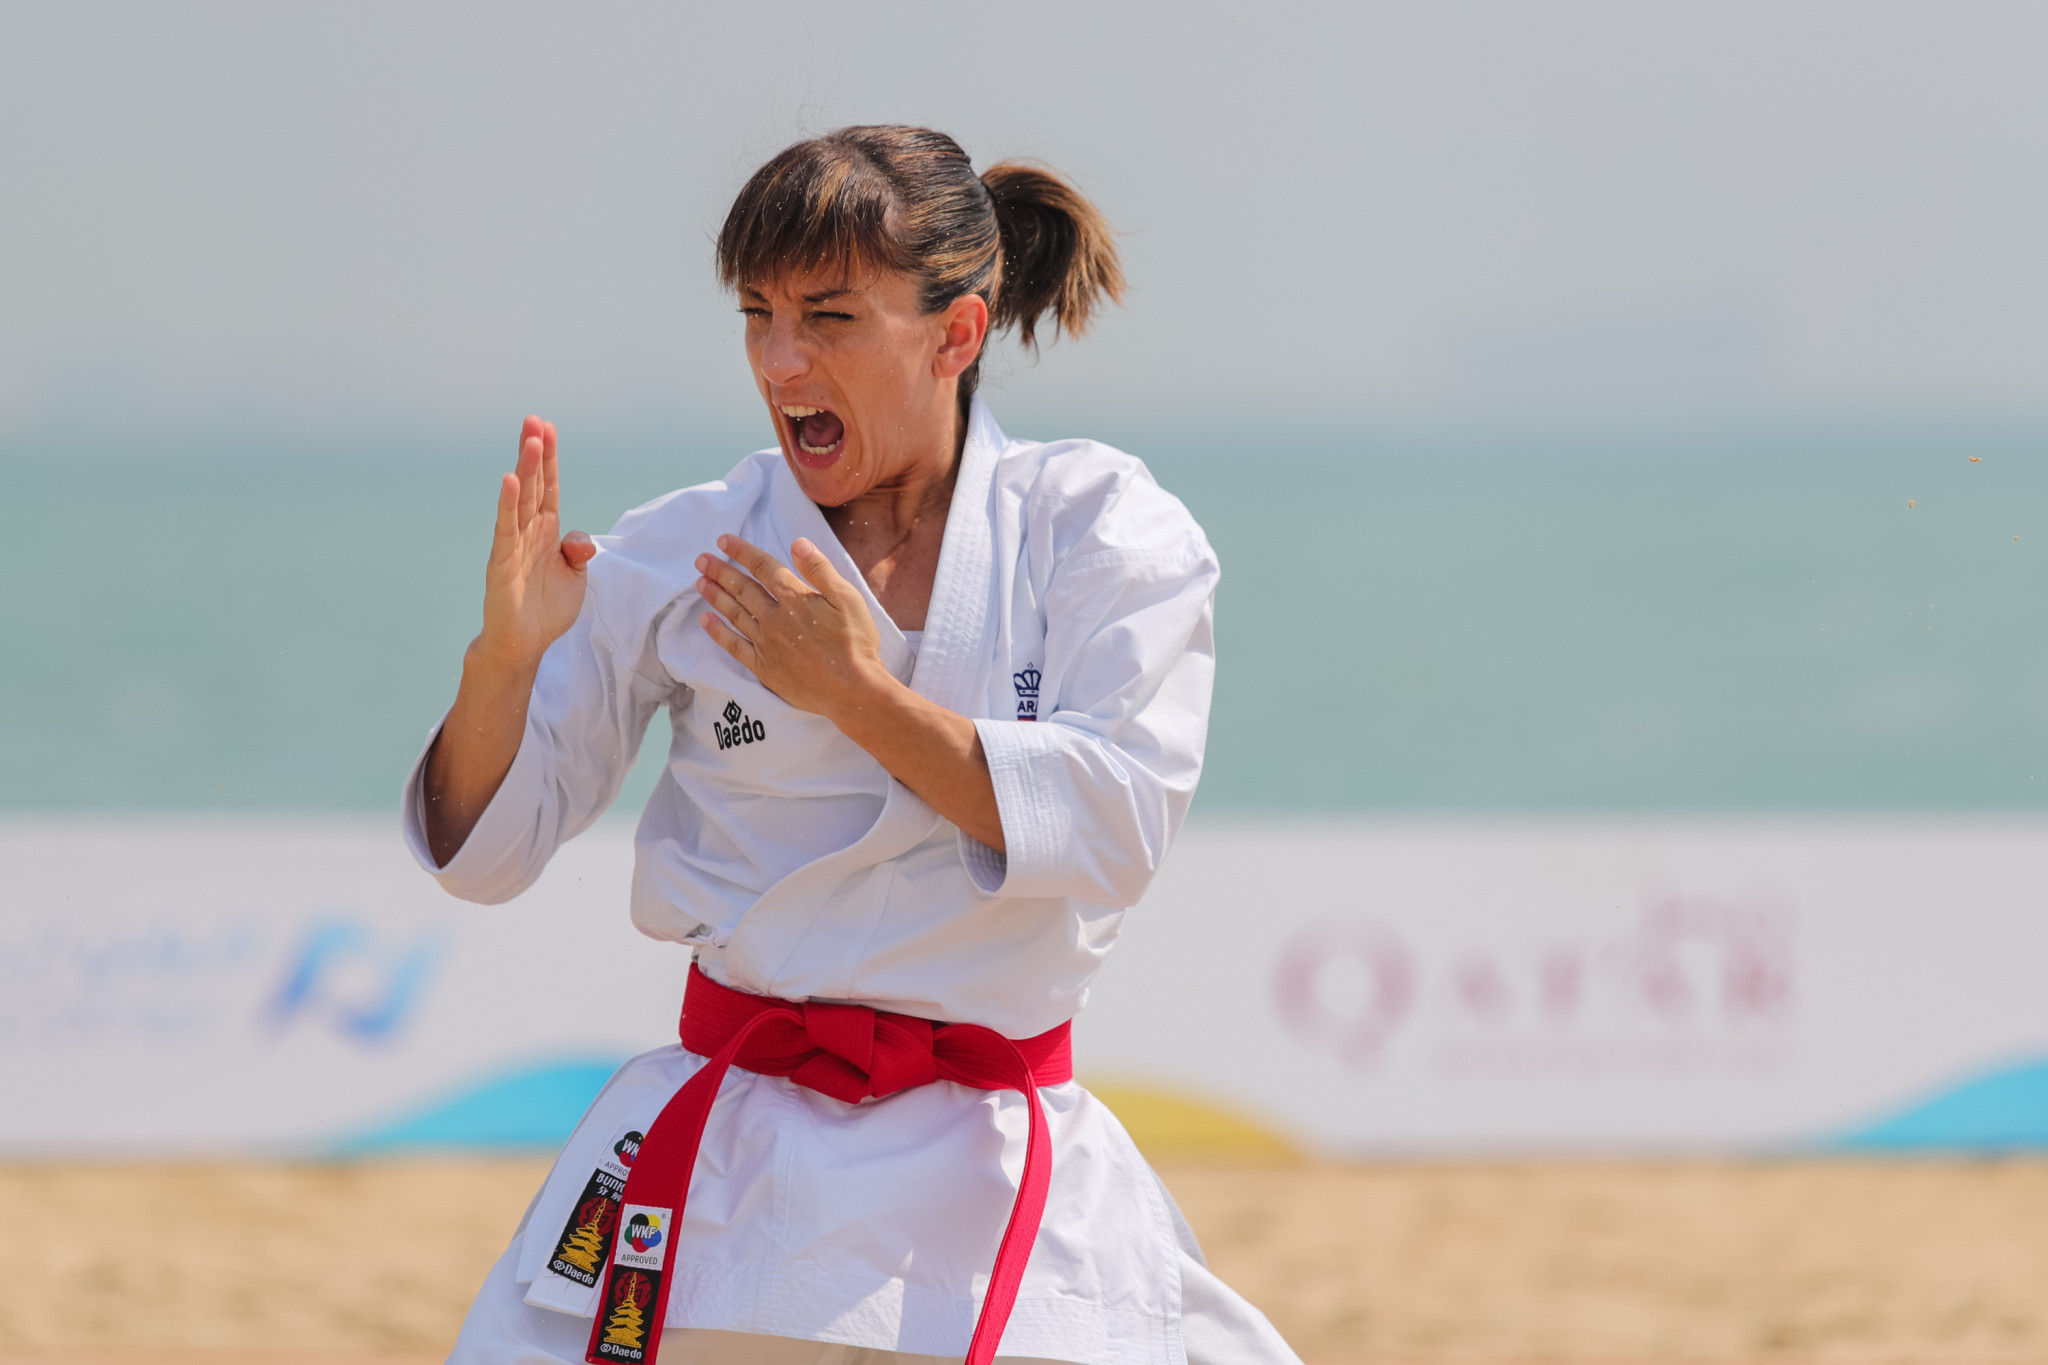 Kata karate competition was held for the first time on sand as action began ©ANOC World Beach Games